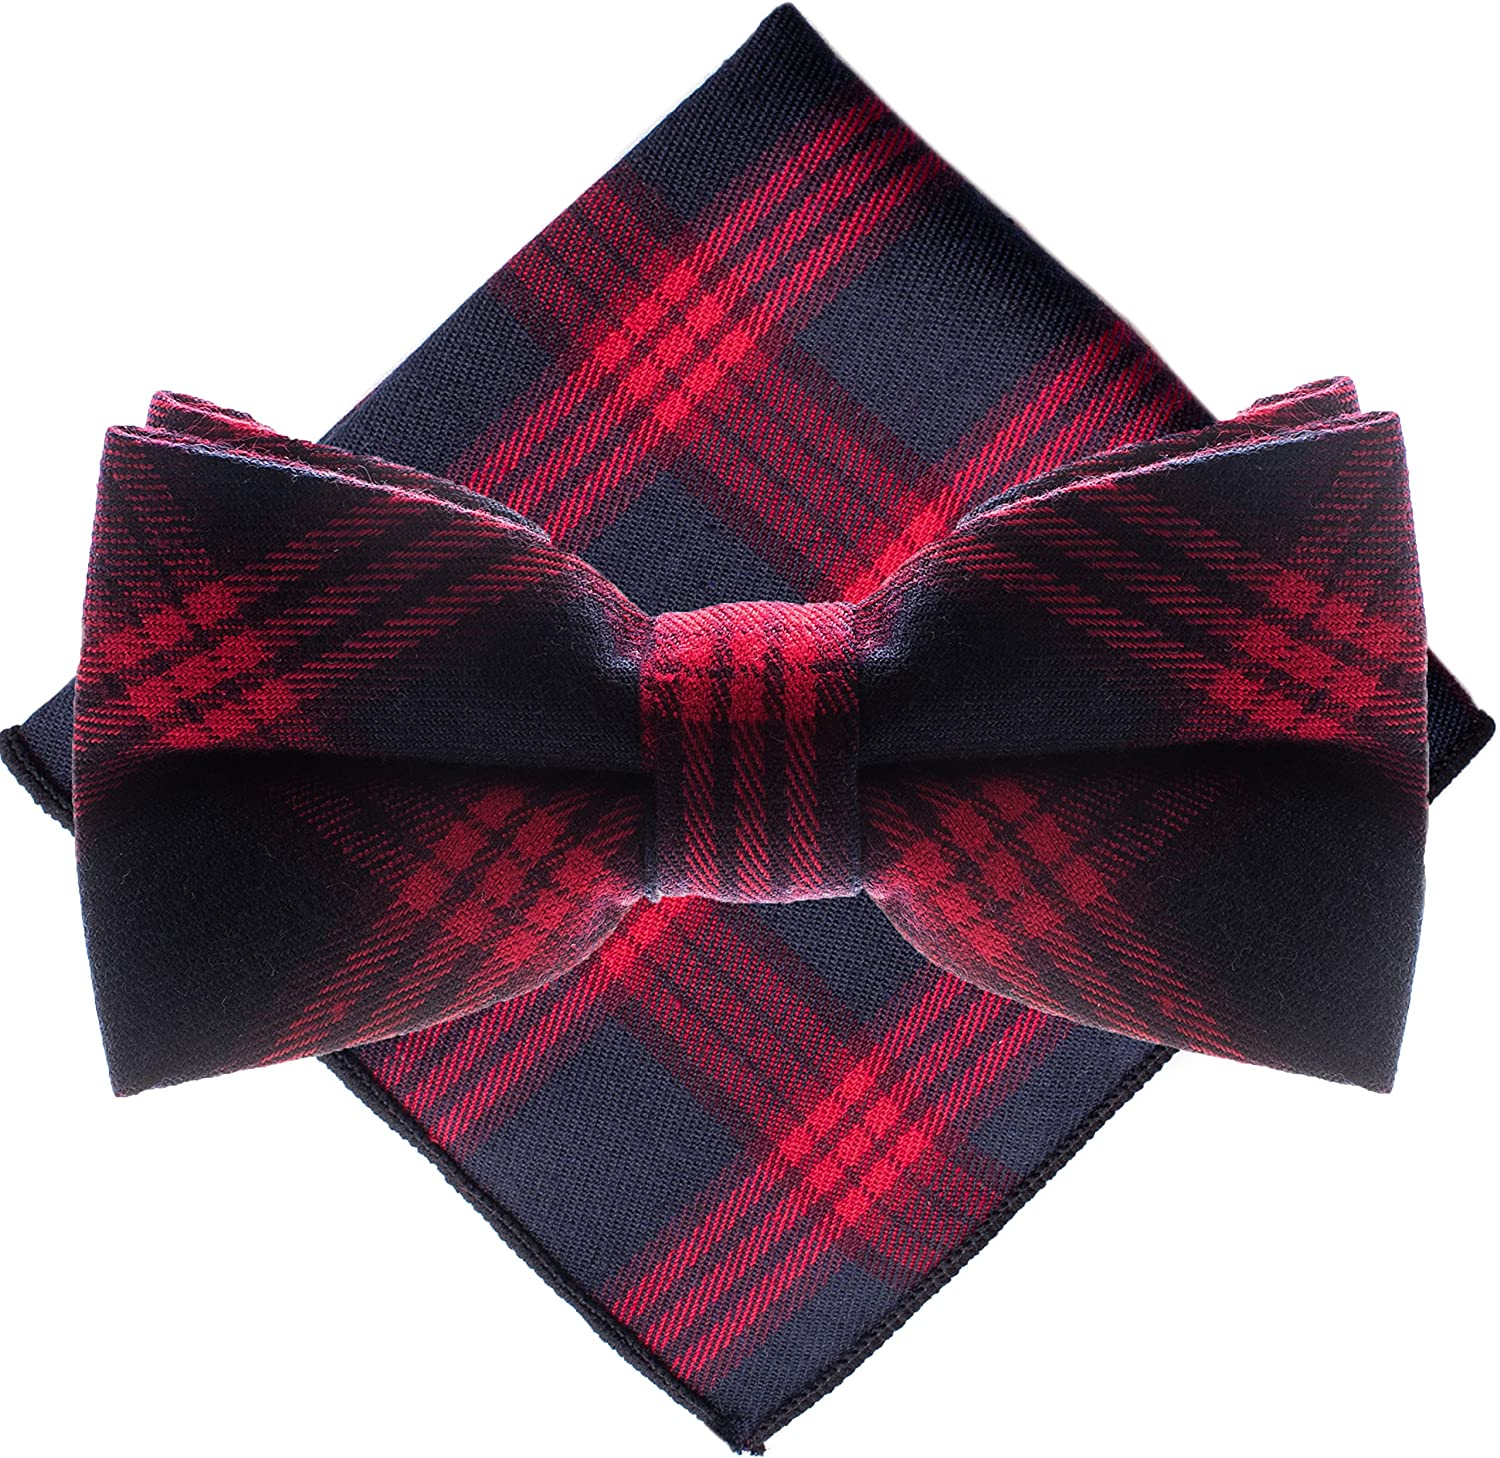 Man of Men - Bow Tie and Pocket Square Set - Plaid Collection